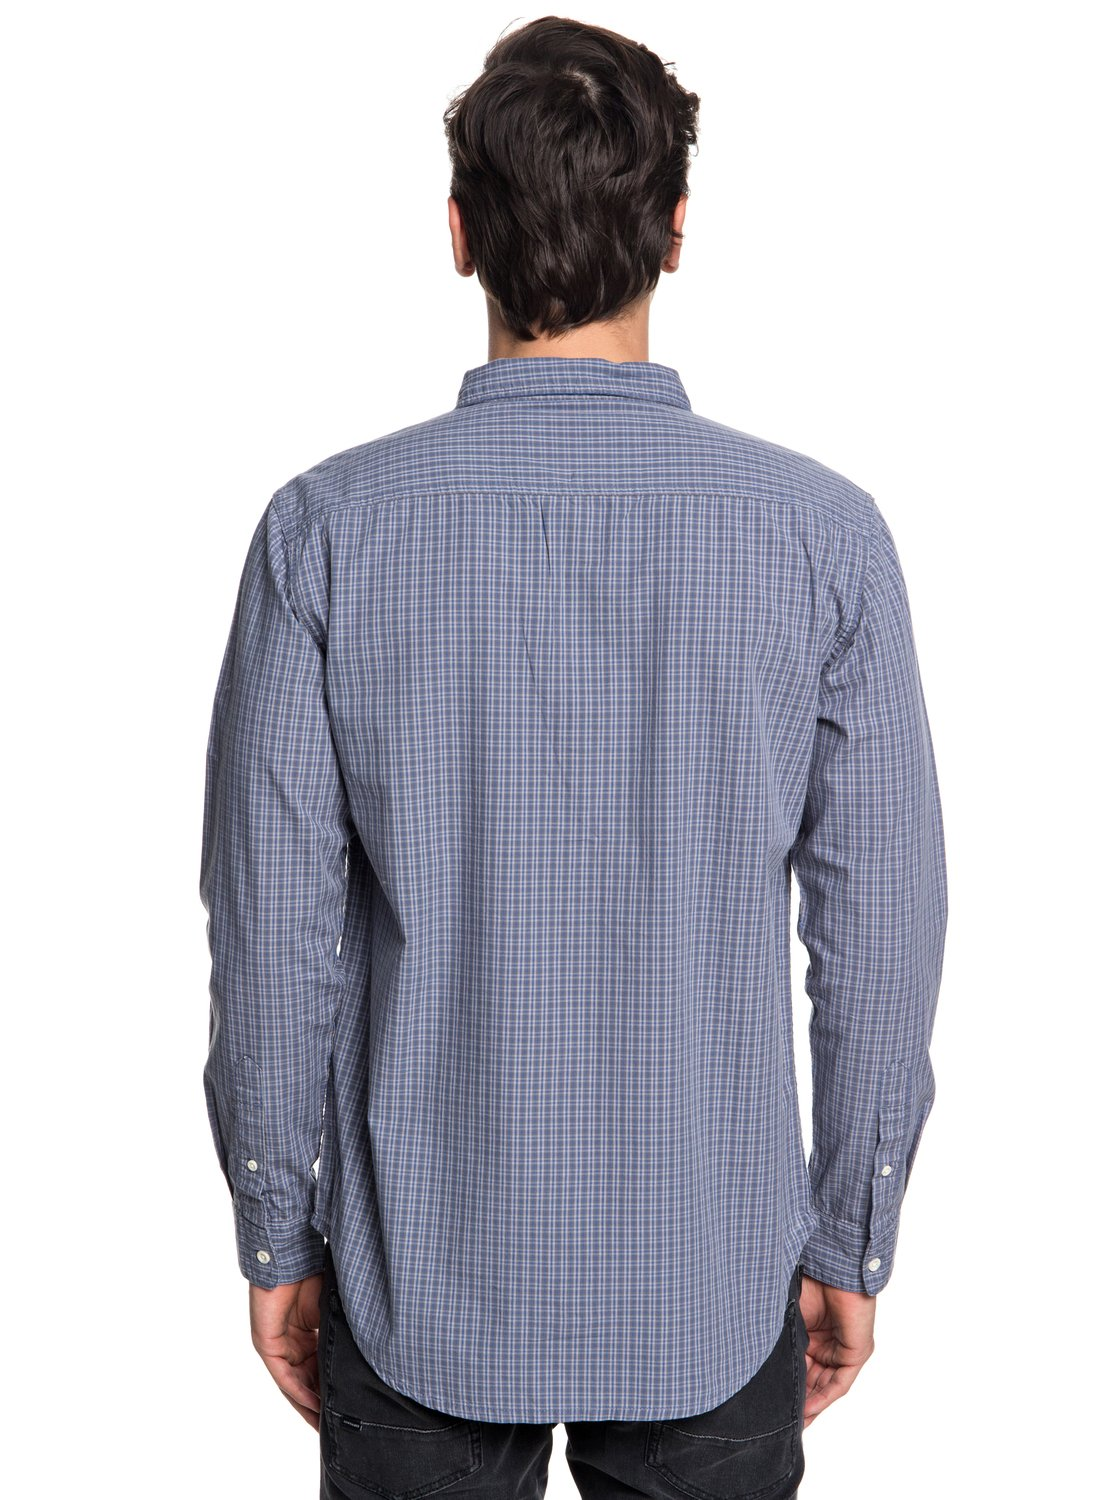 Quiksilver-Everyday-Check-Chemise-a-manches-longues-pour-Homme-EQYWT03722 miniature 7